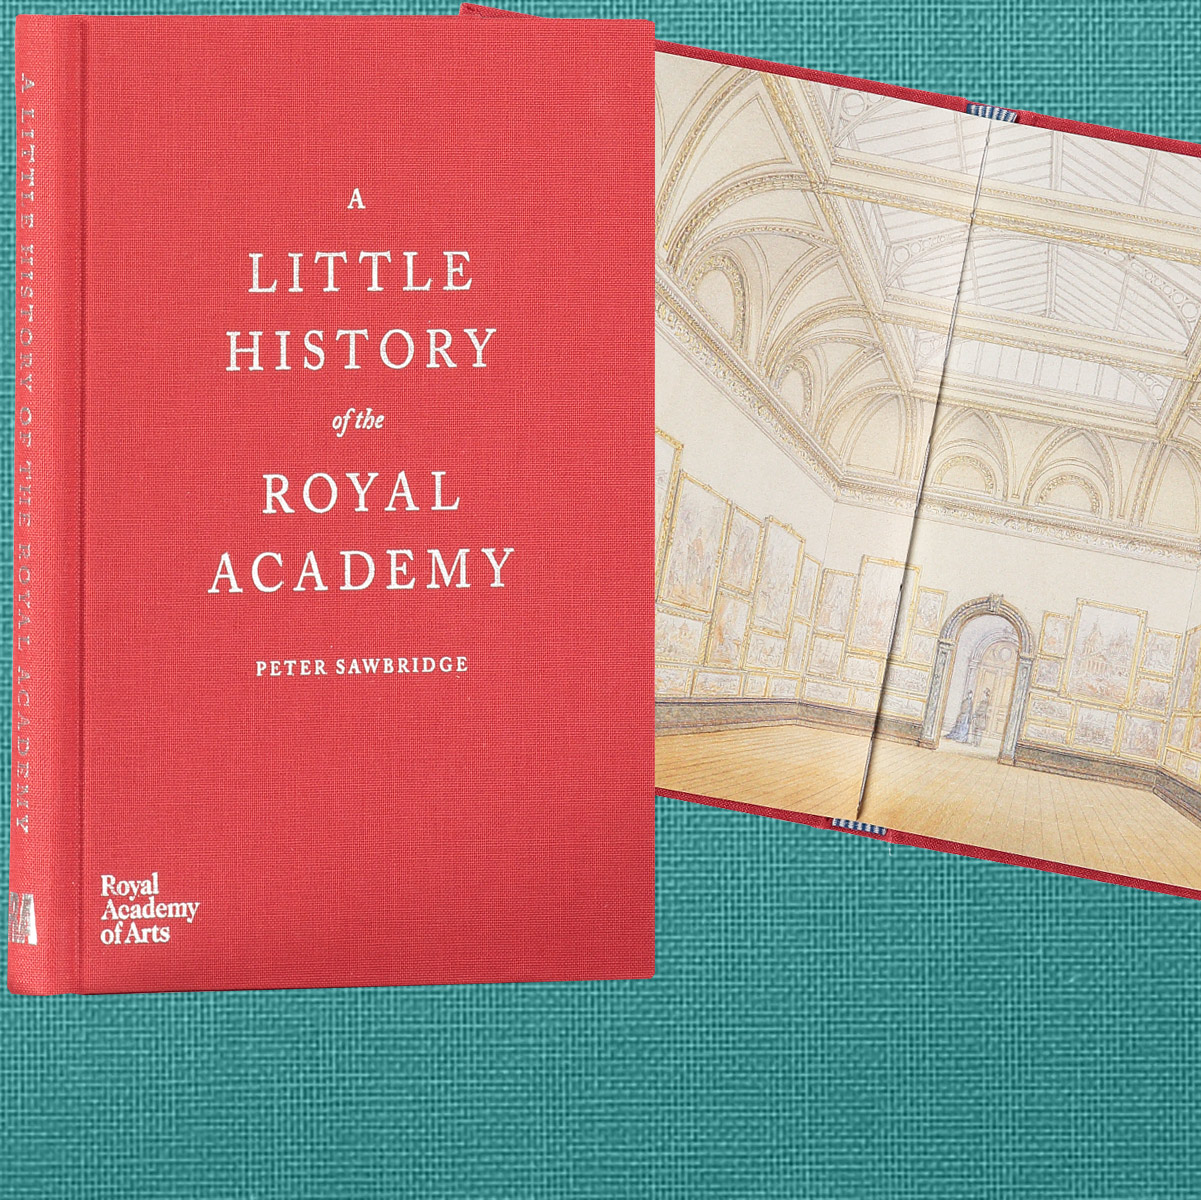 A Little History of the Royal Academy by Peter Sawbridge